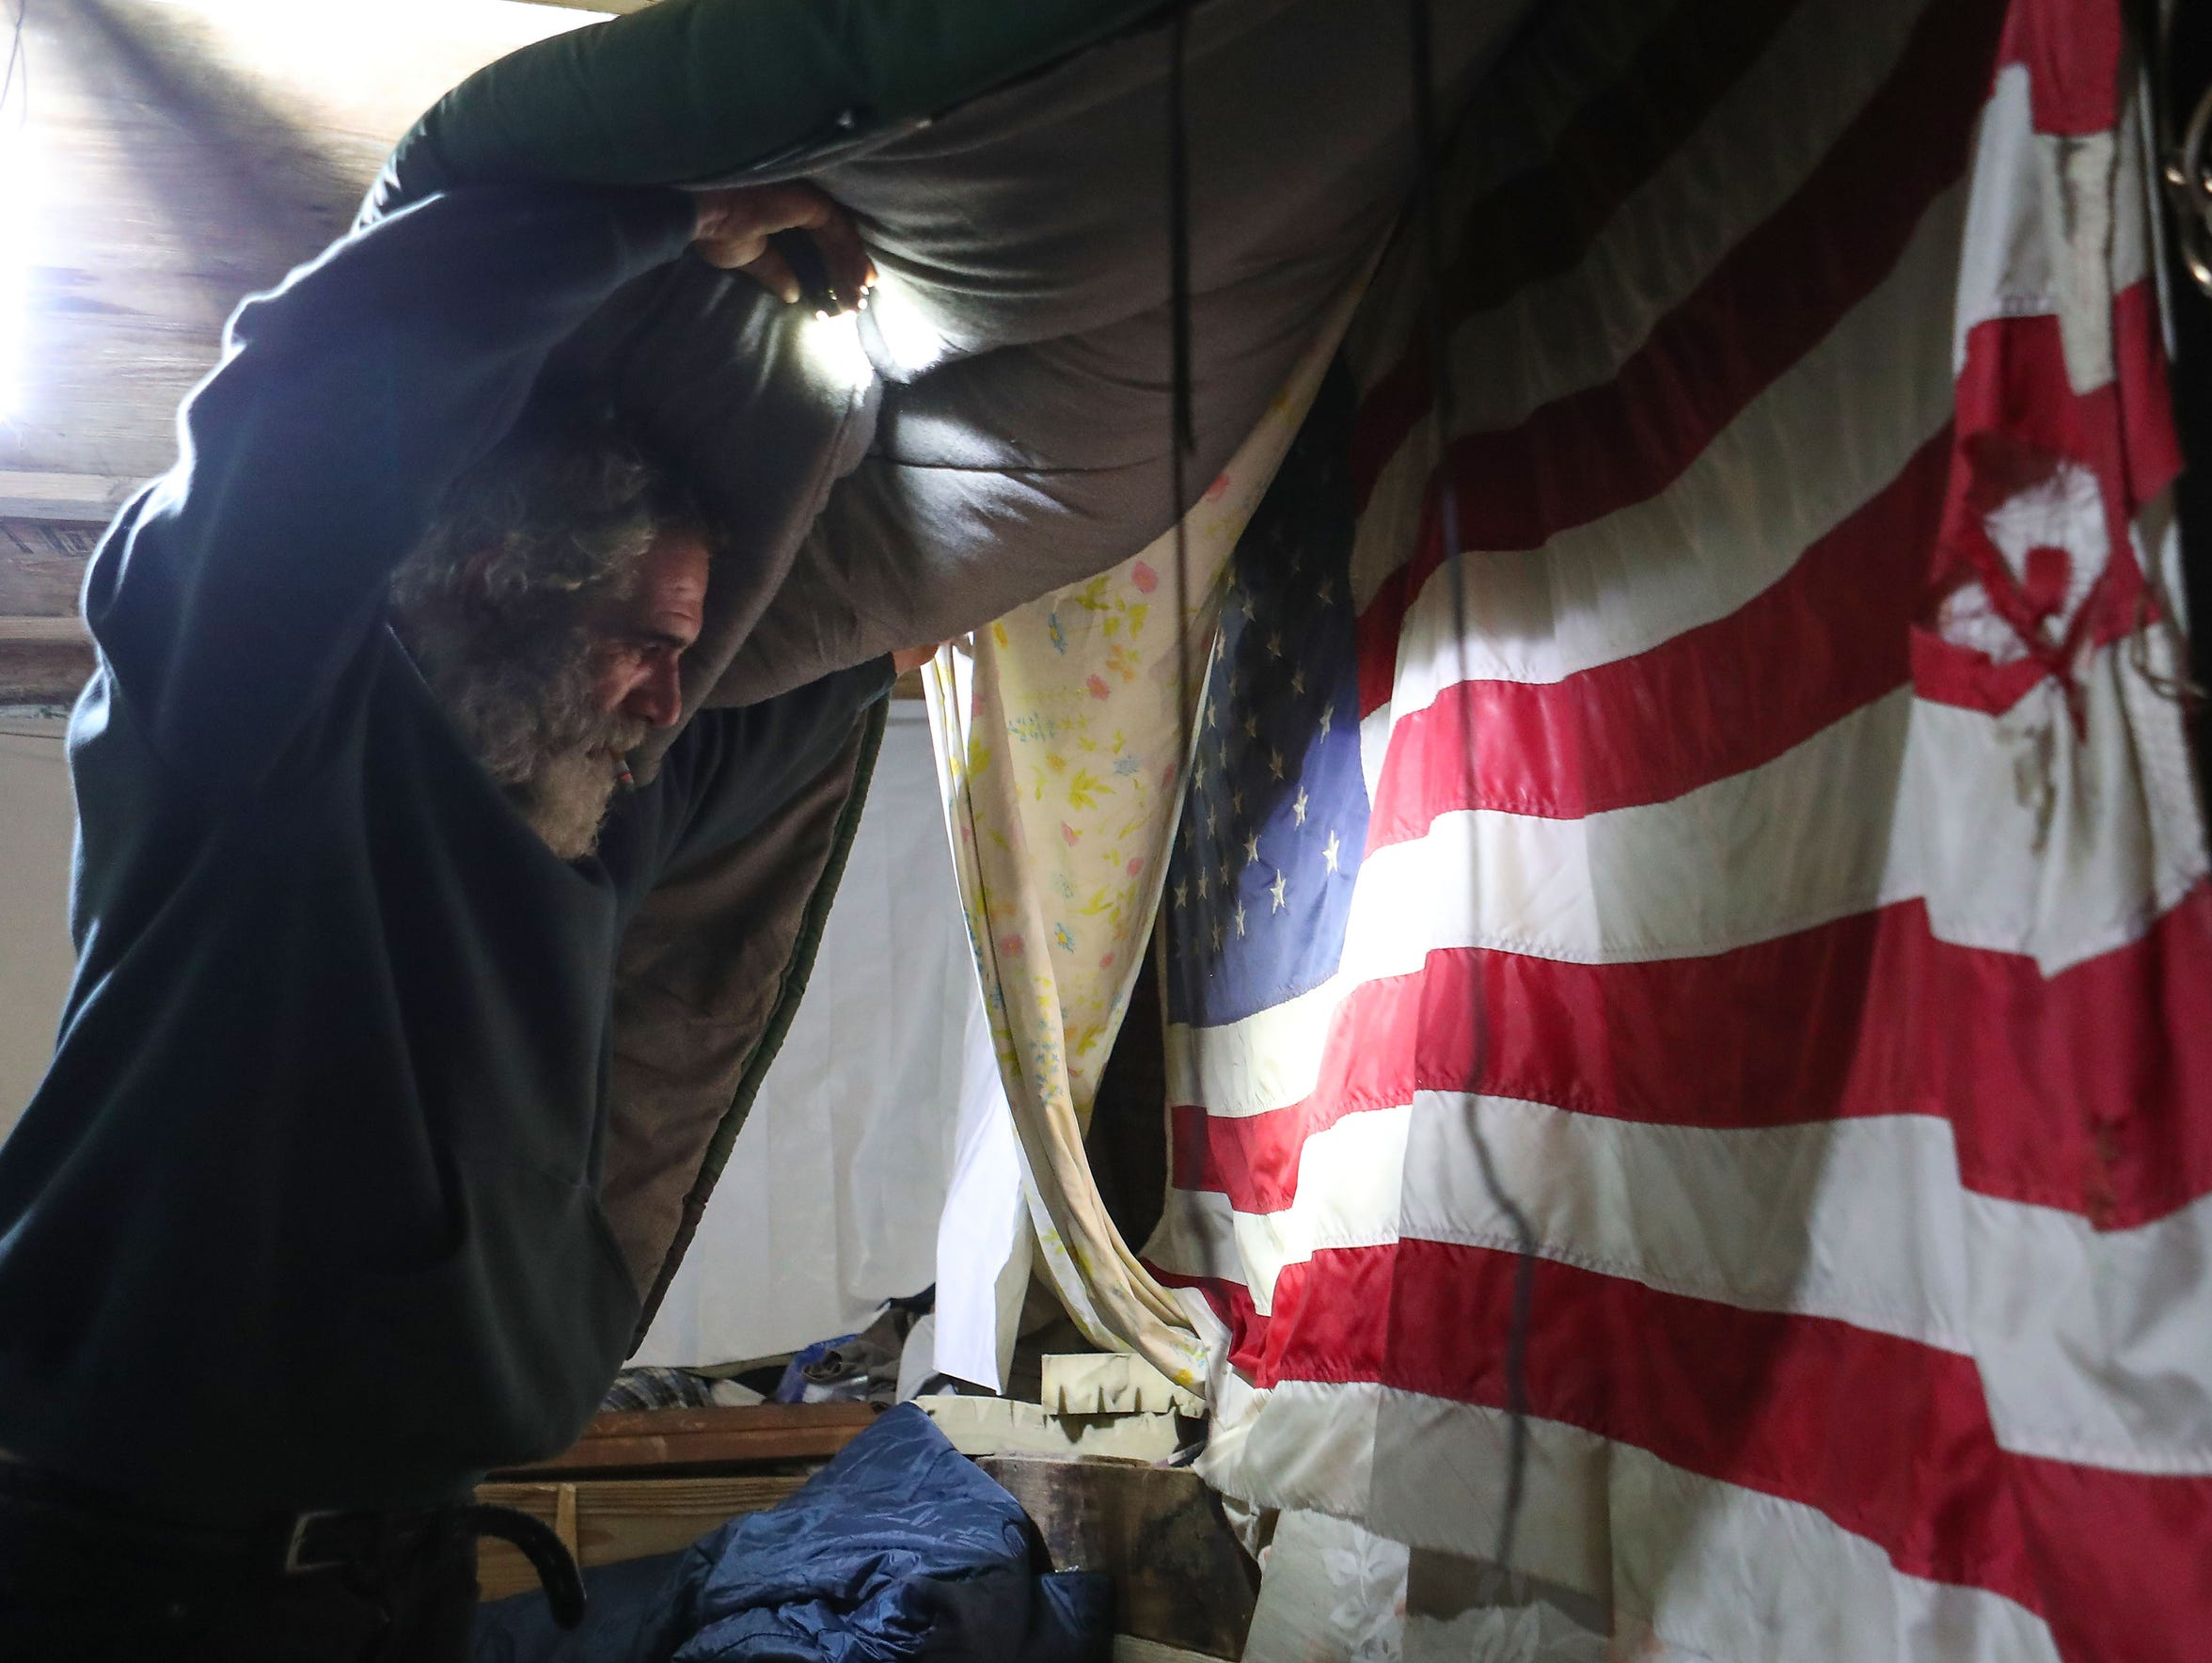 Inside of his home made from scrap wood and found items,